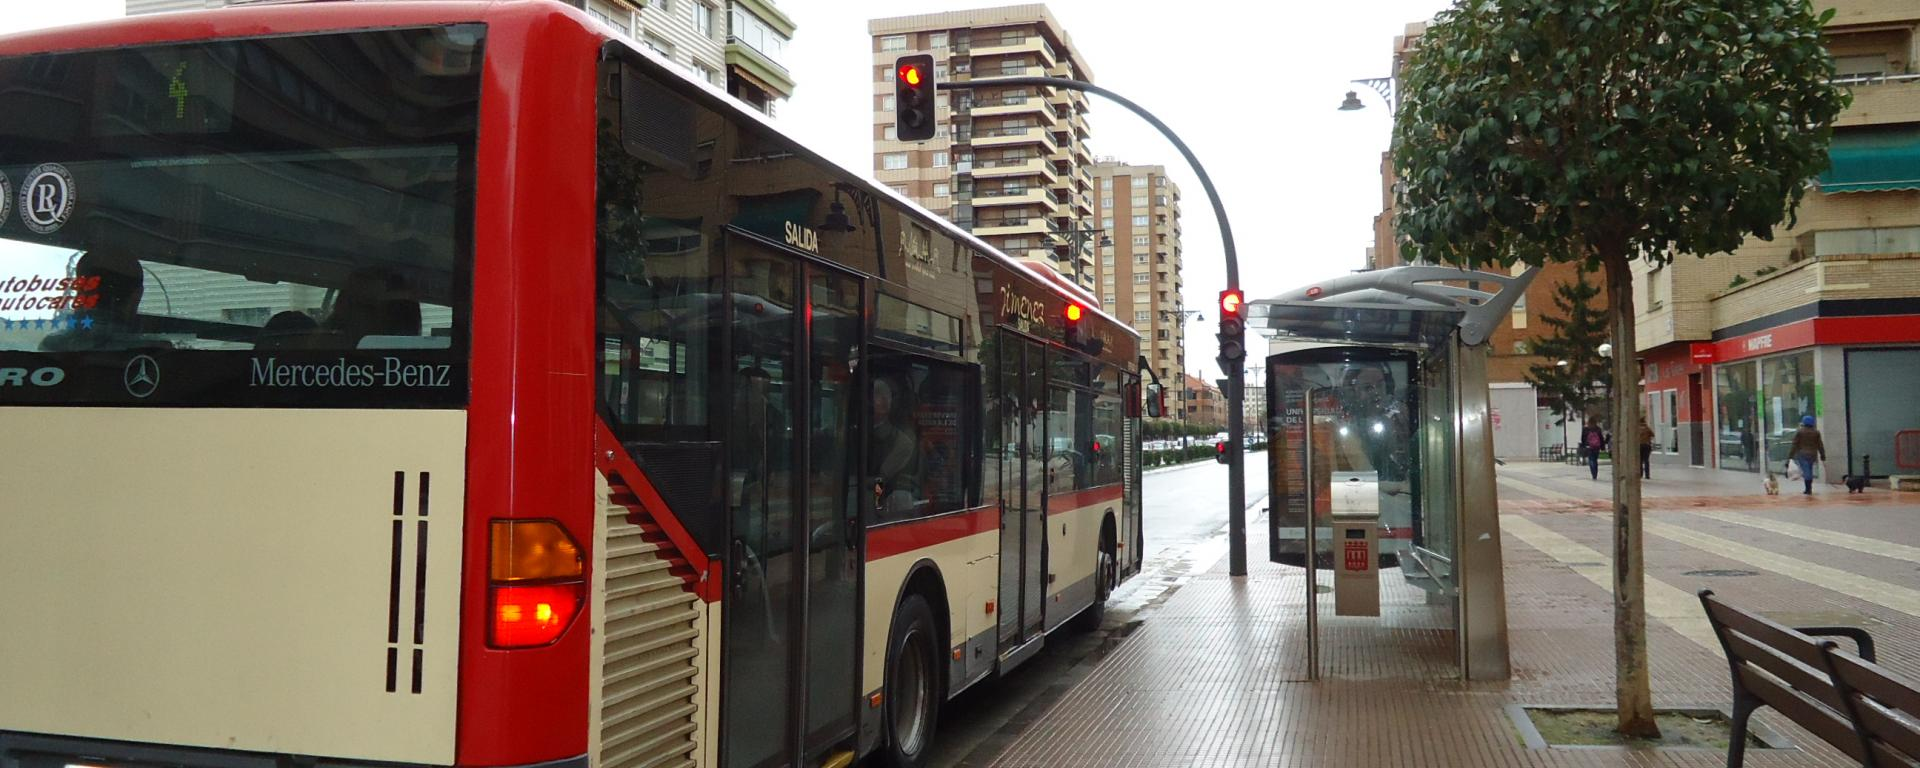 Sustainable Urban Mobility Plans in Spain